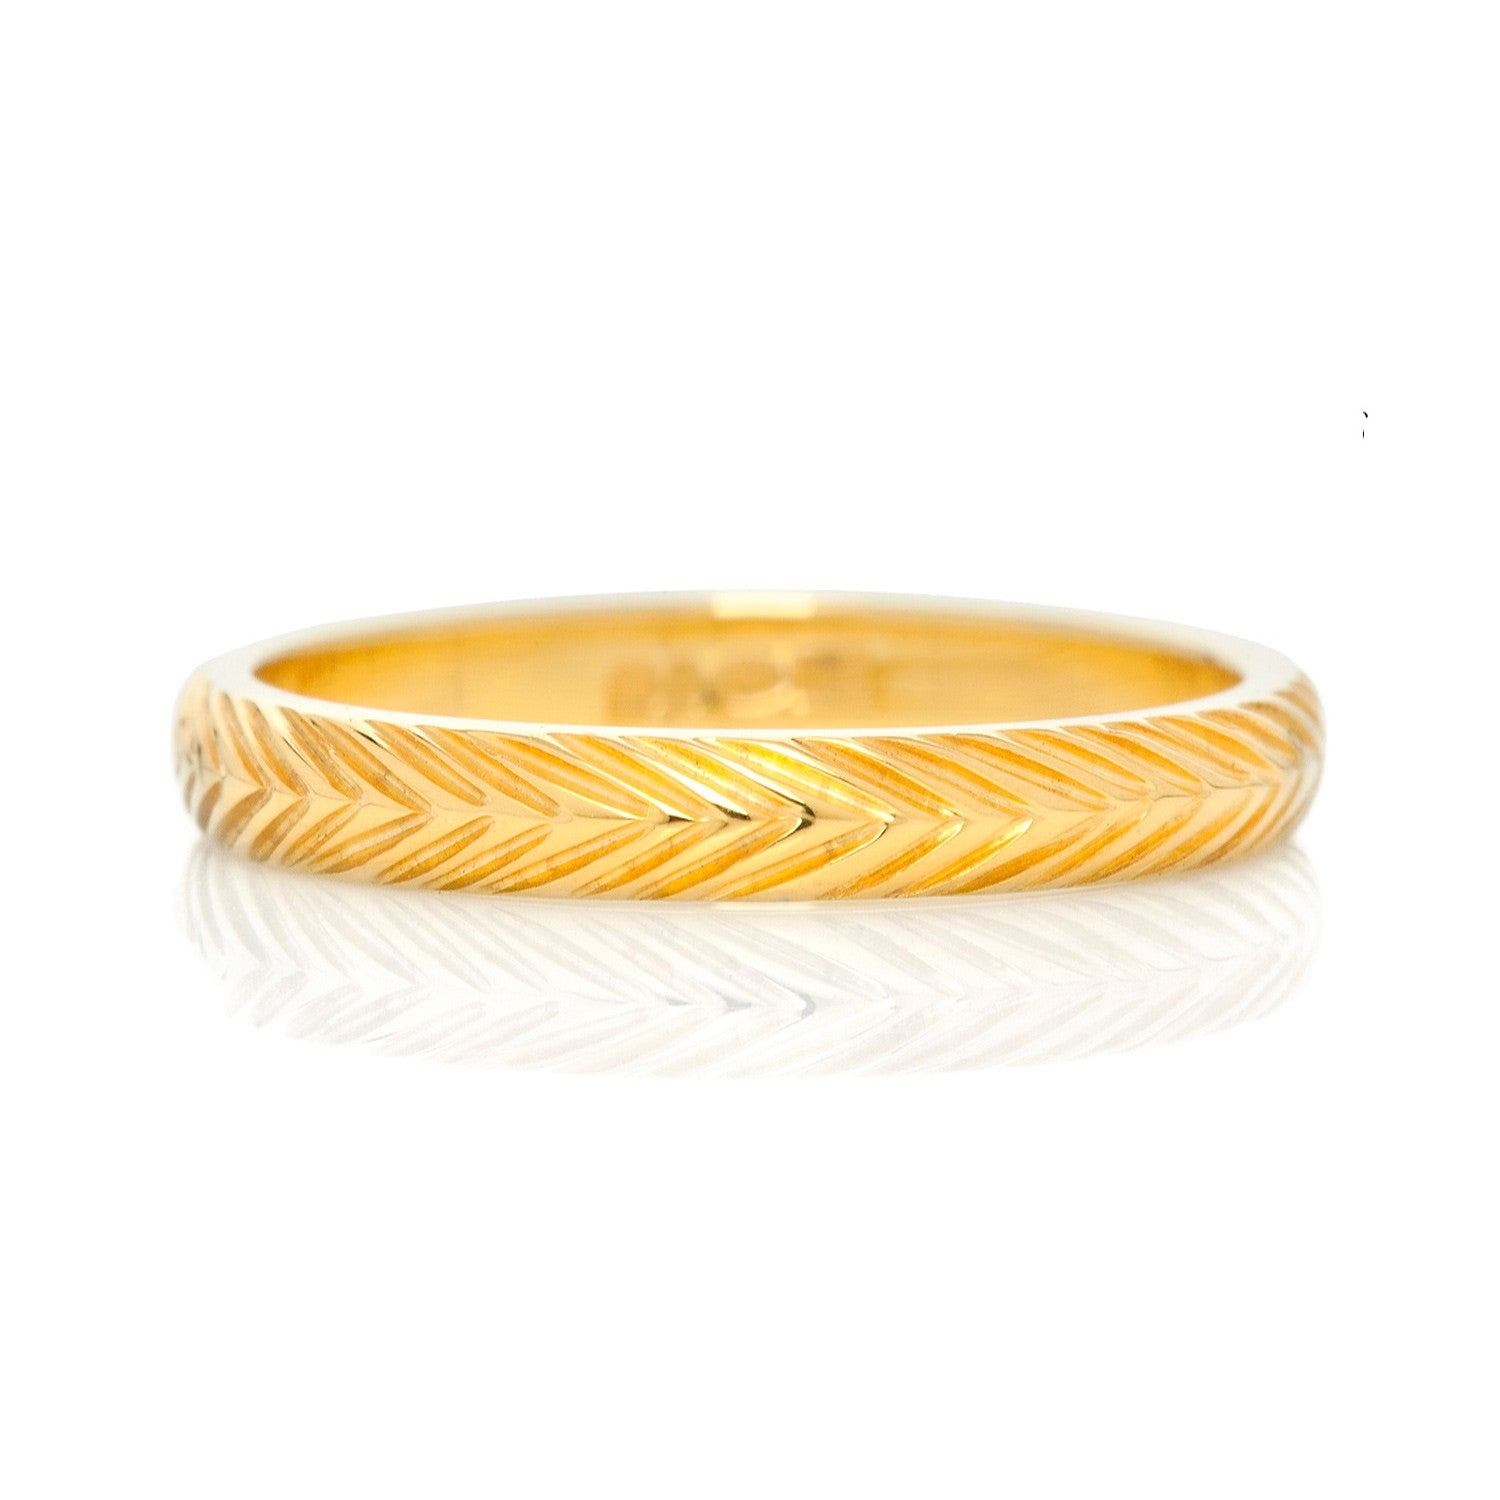 Wheat Sheaf Engraved Ethical Gold Wedding Ring 3mm